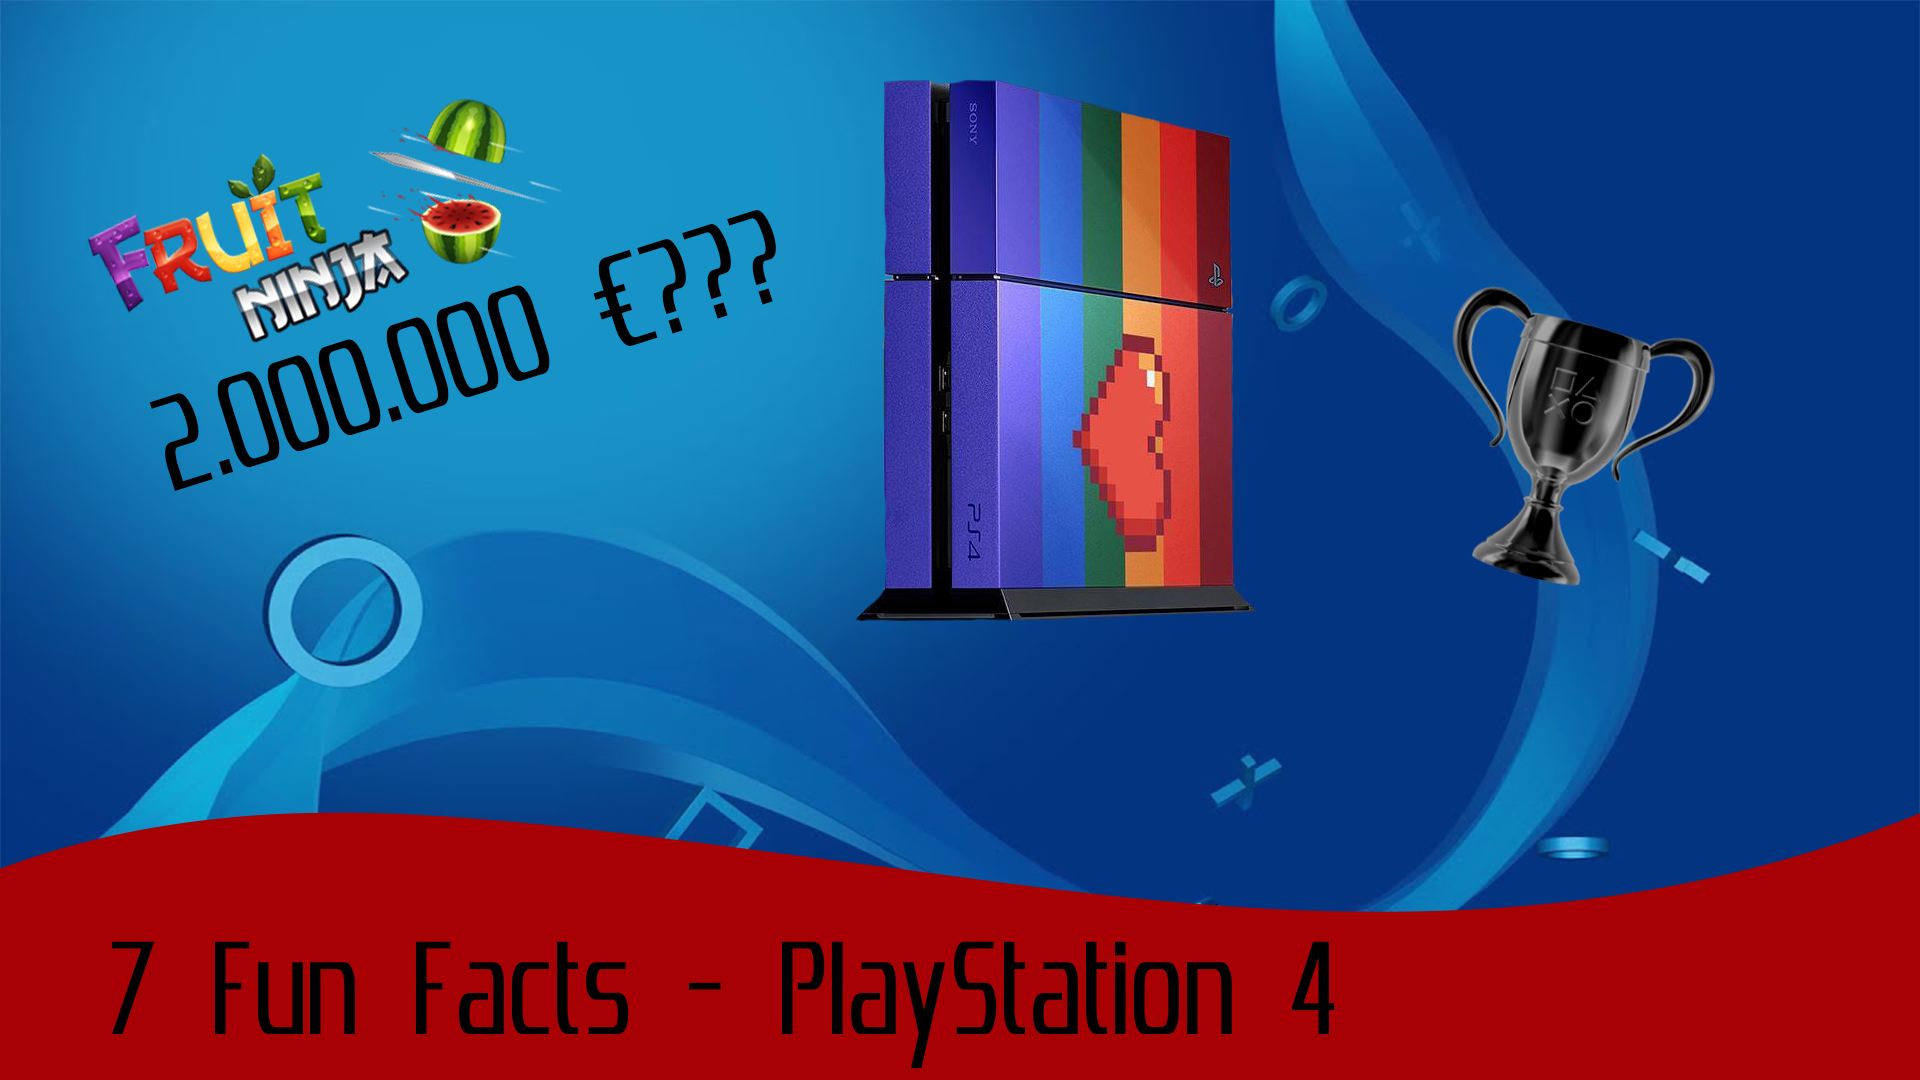 7 Fun Facts about the PlayStation 4